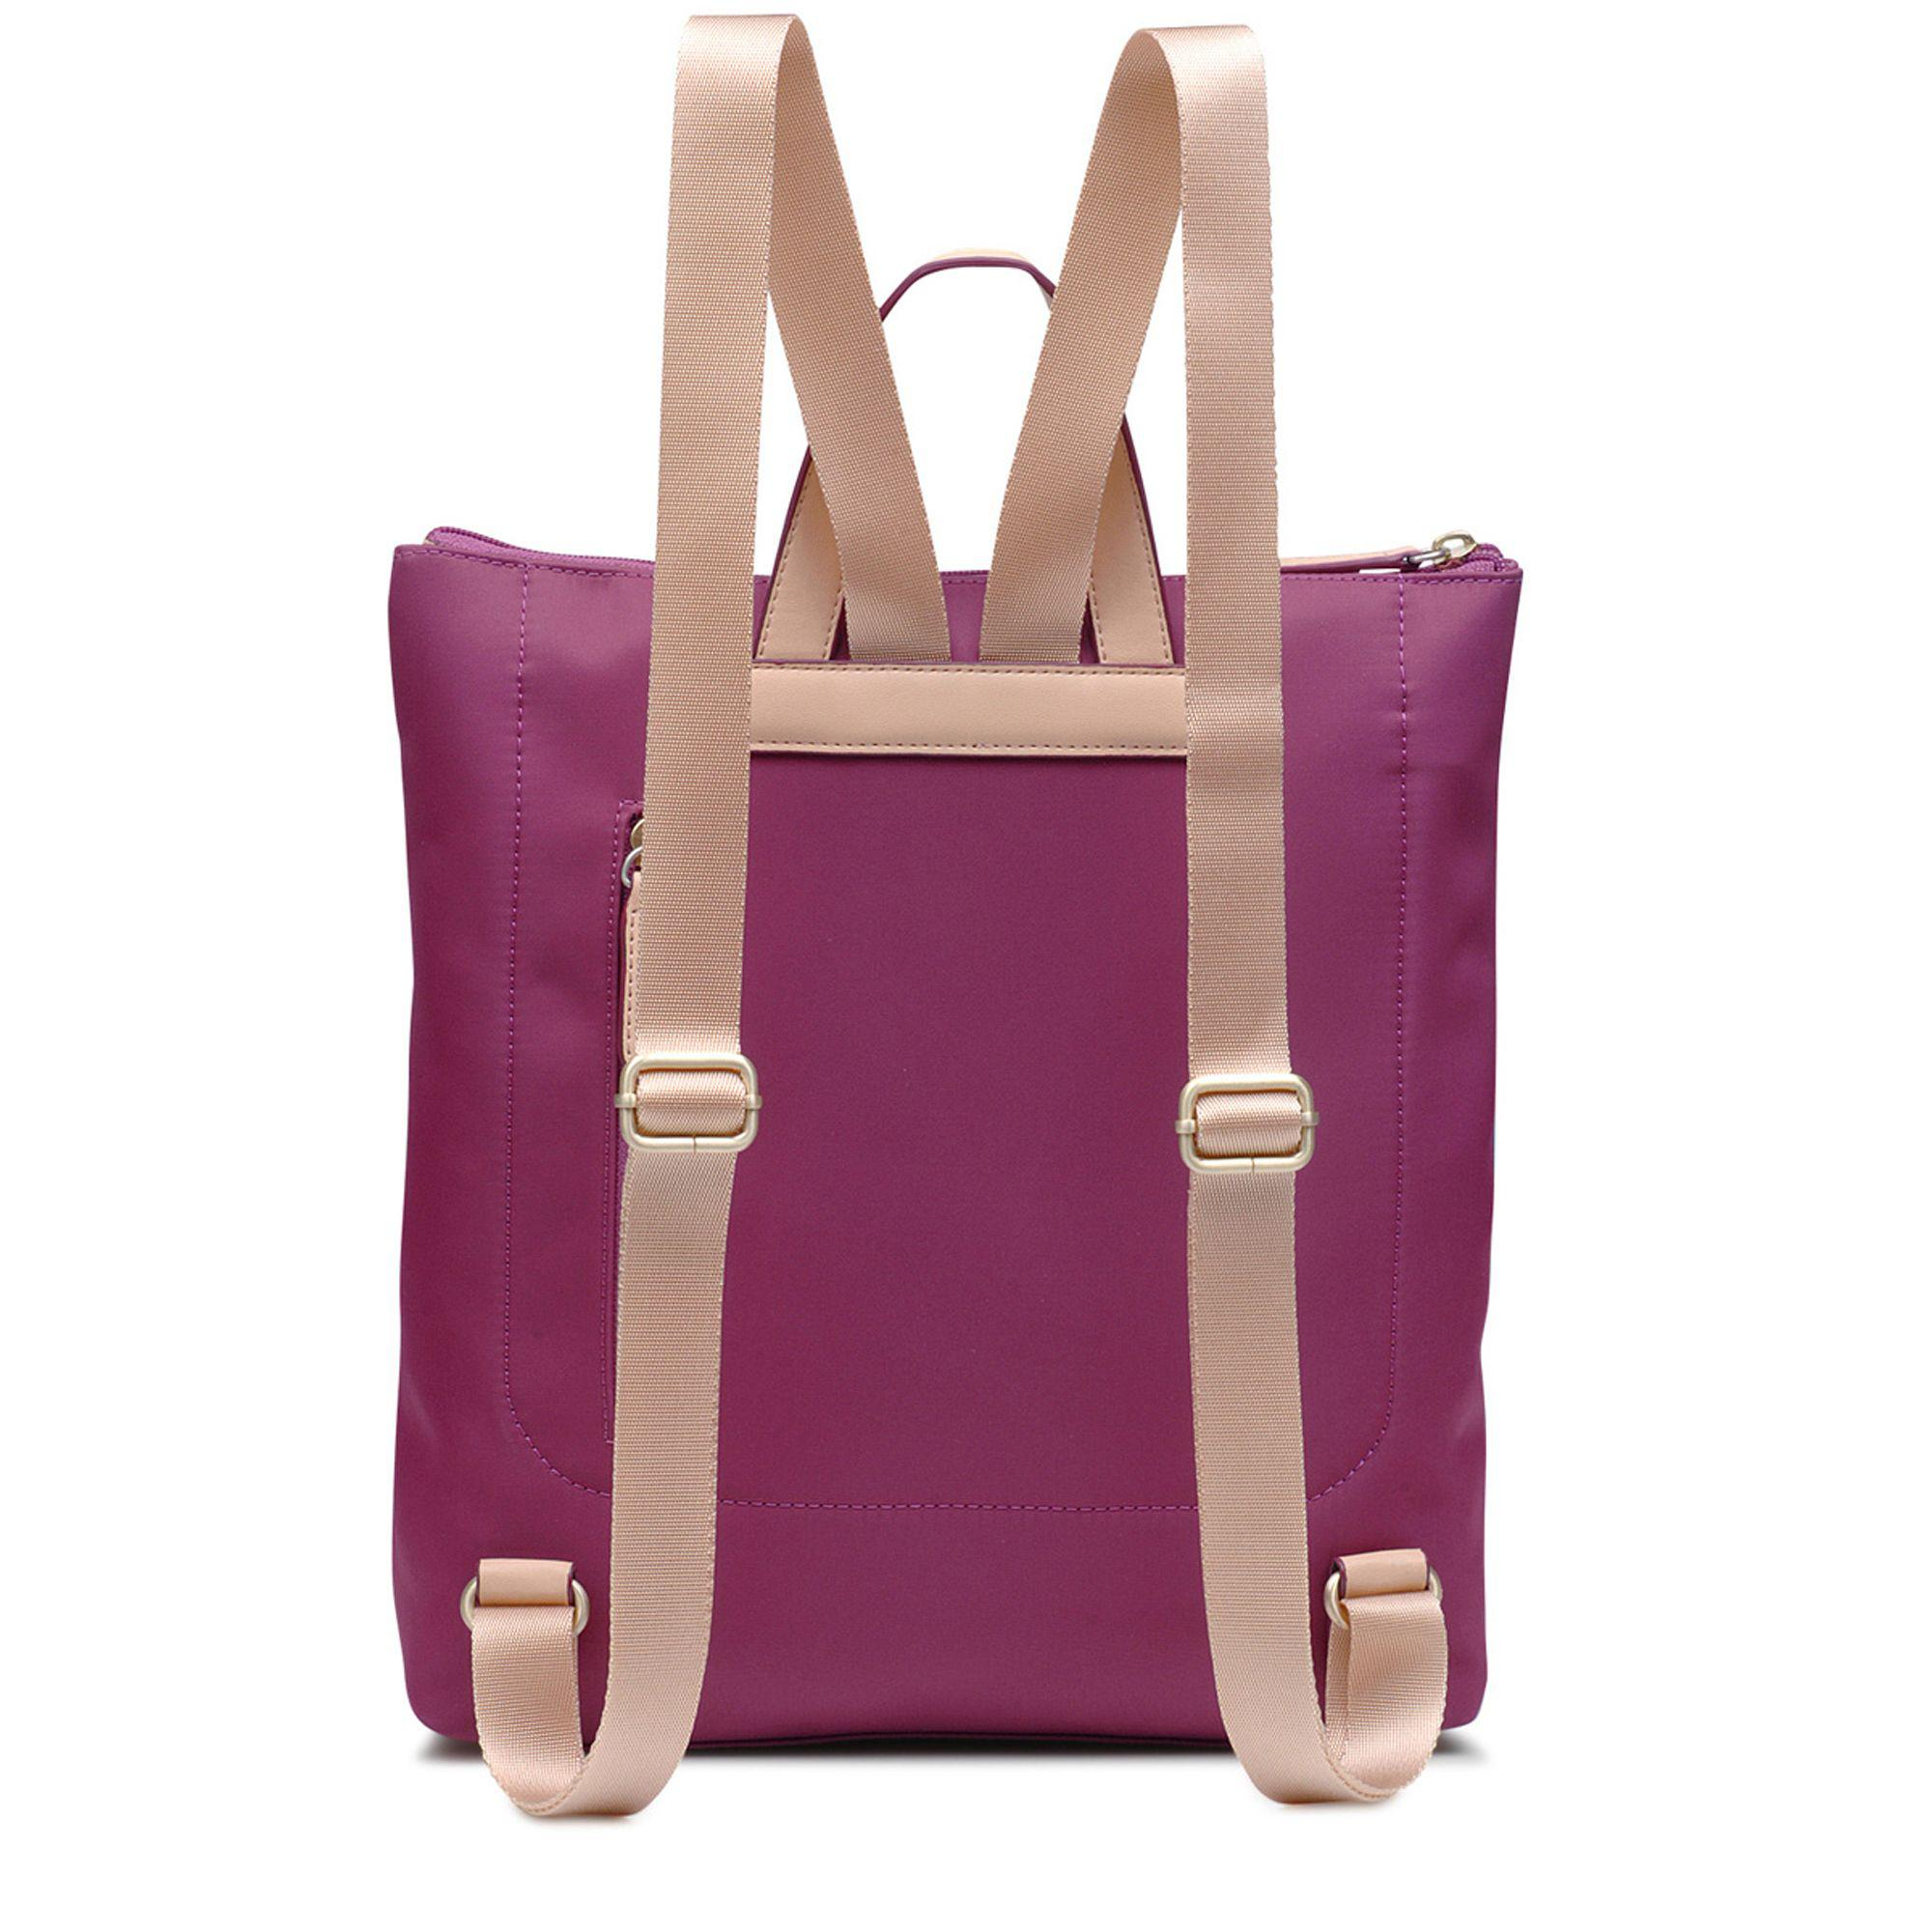 Radley Pink Pocket Essentials Large Zip-top Backpack in Pink - Lyst 83e5a93c2107e